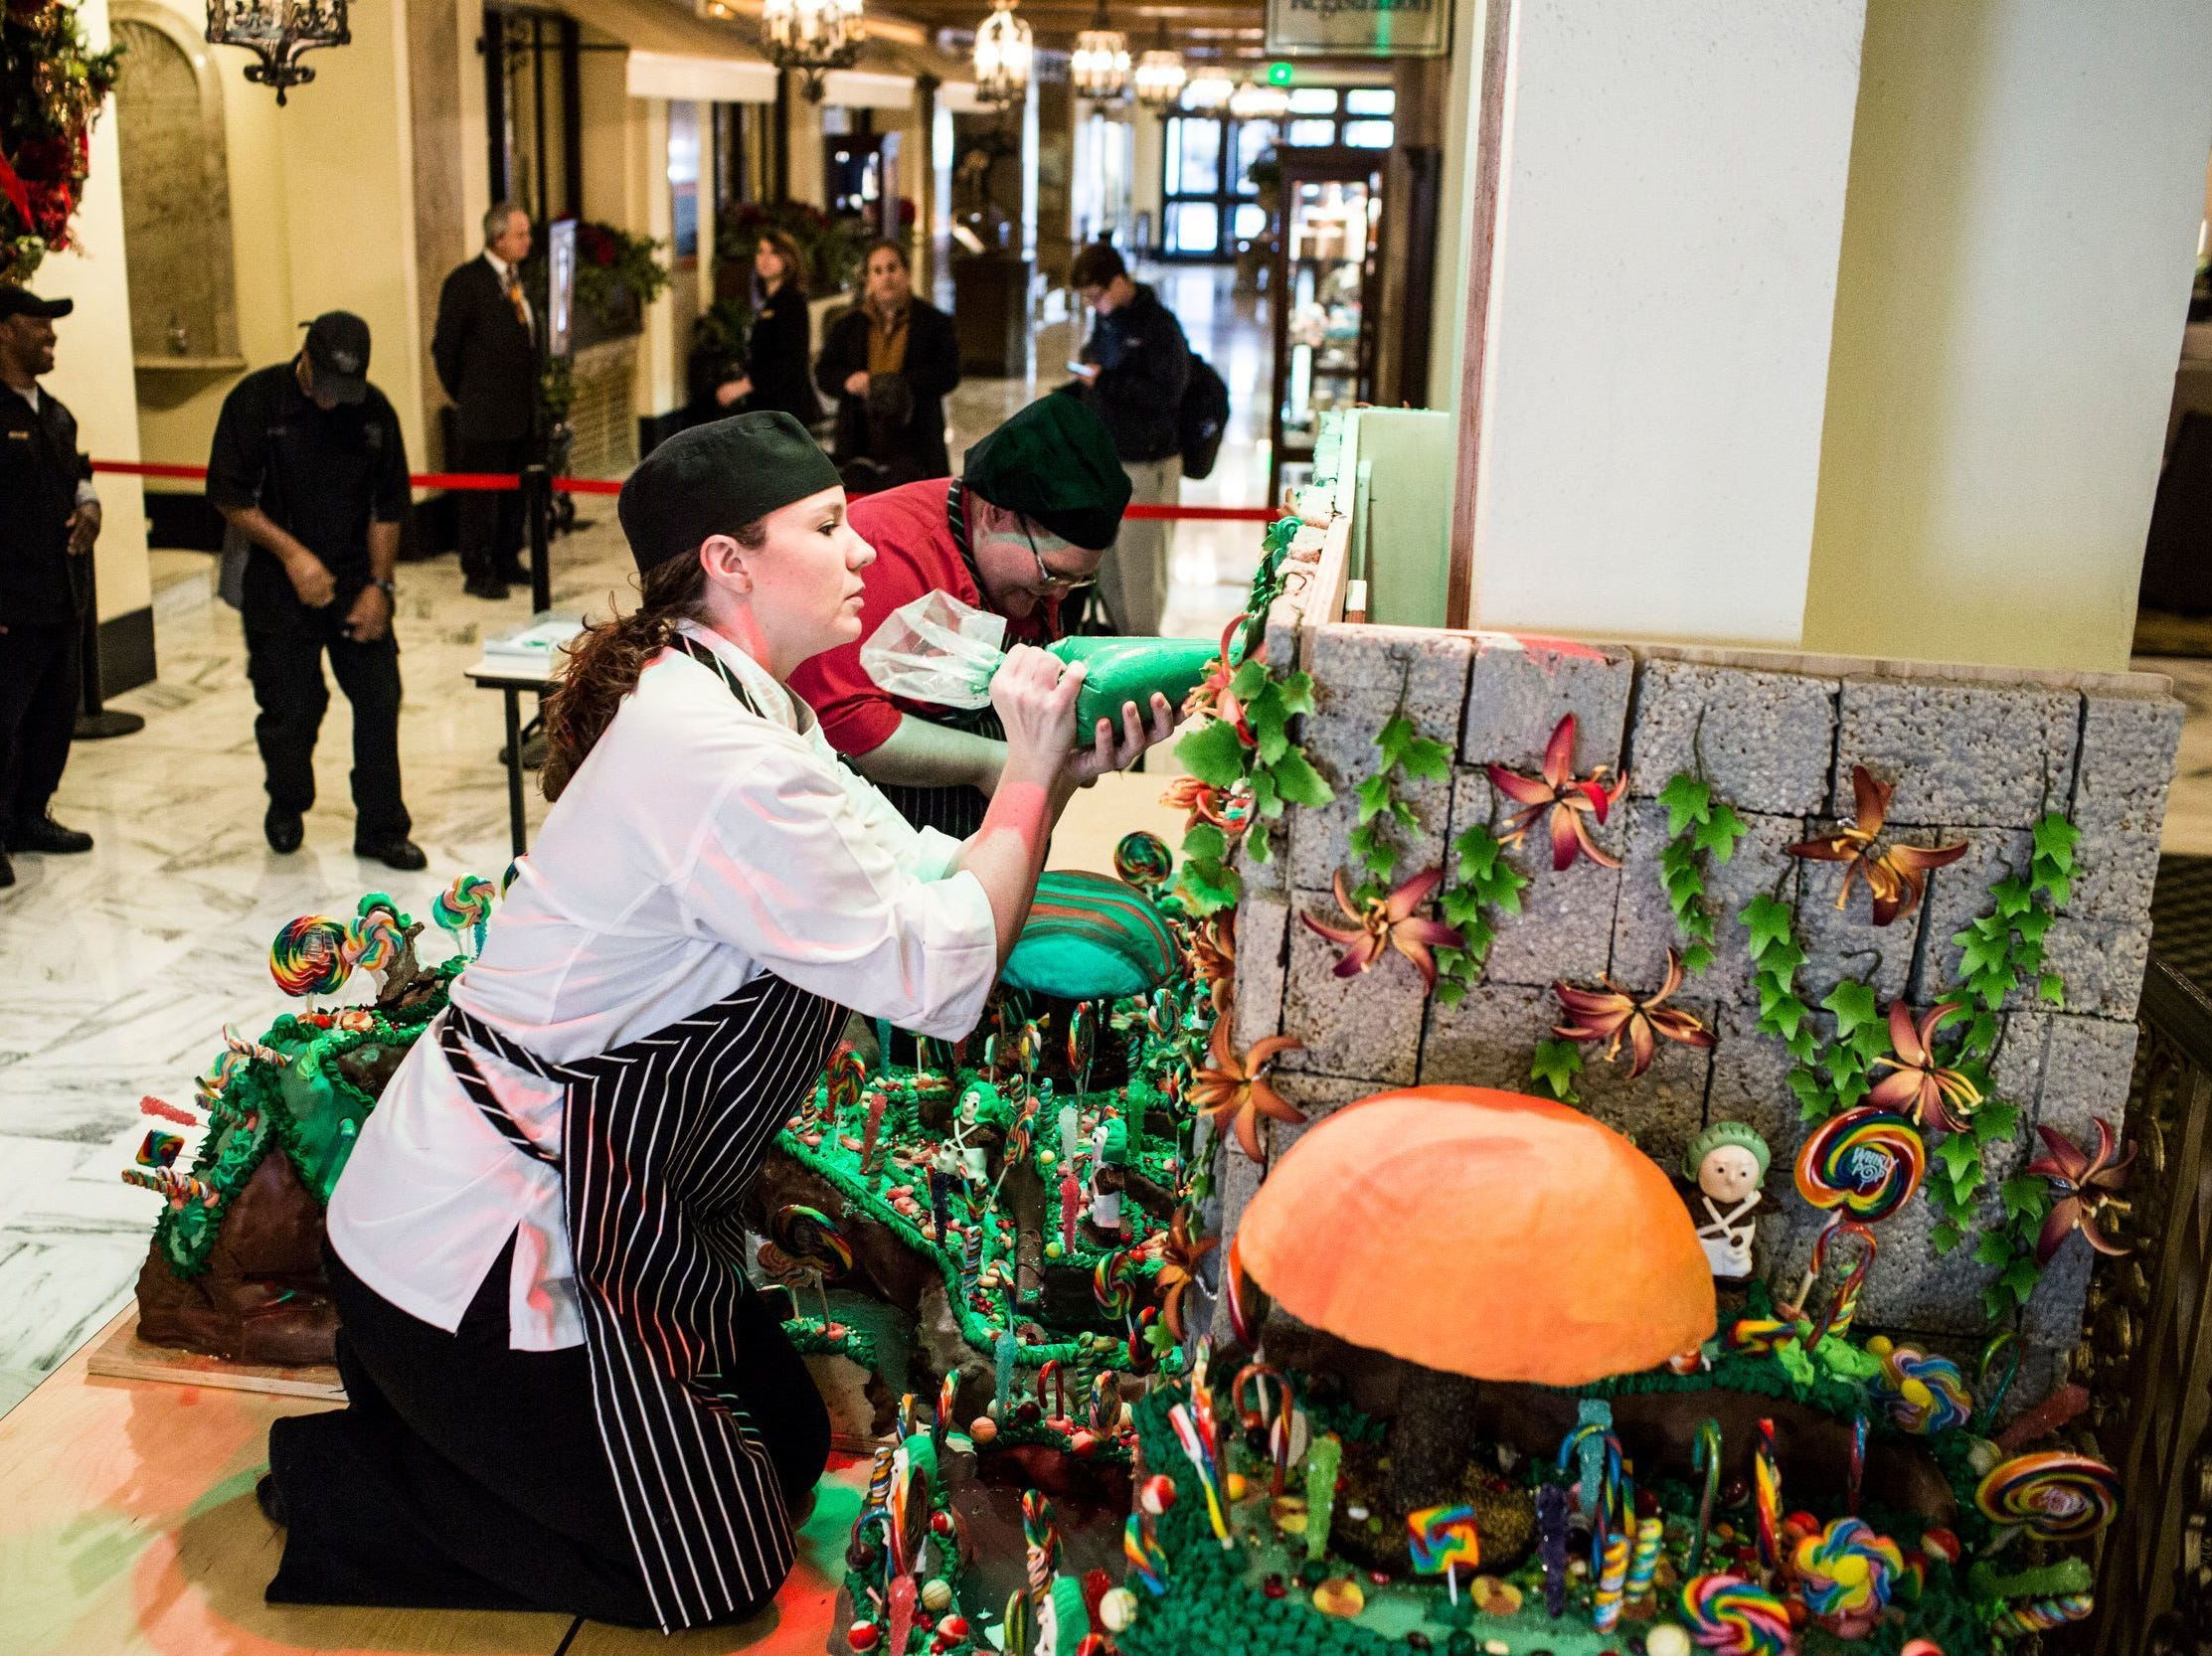 Elaine Jones, assistant executive pastry chef, adds frosting to the holiday gingerbread display at the Peabody Hotel on Nov. 20, 2018. Executive pastry chef Konrad Spitzbart does an elaborate holiday gingerbread display every year.